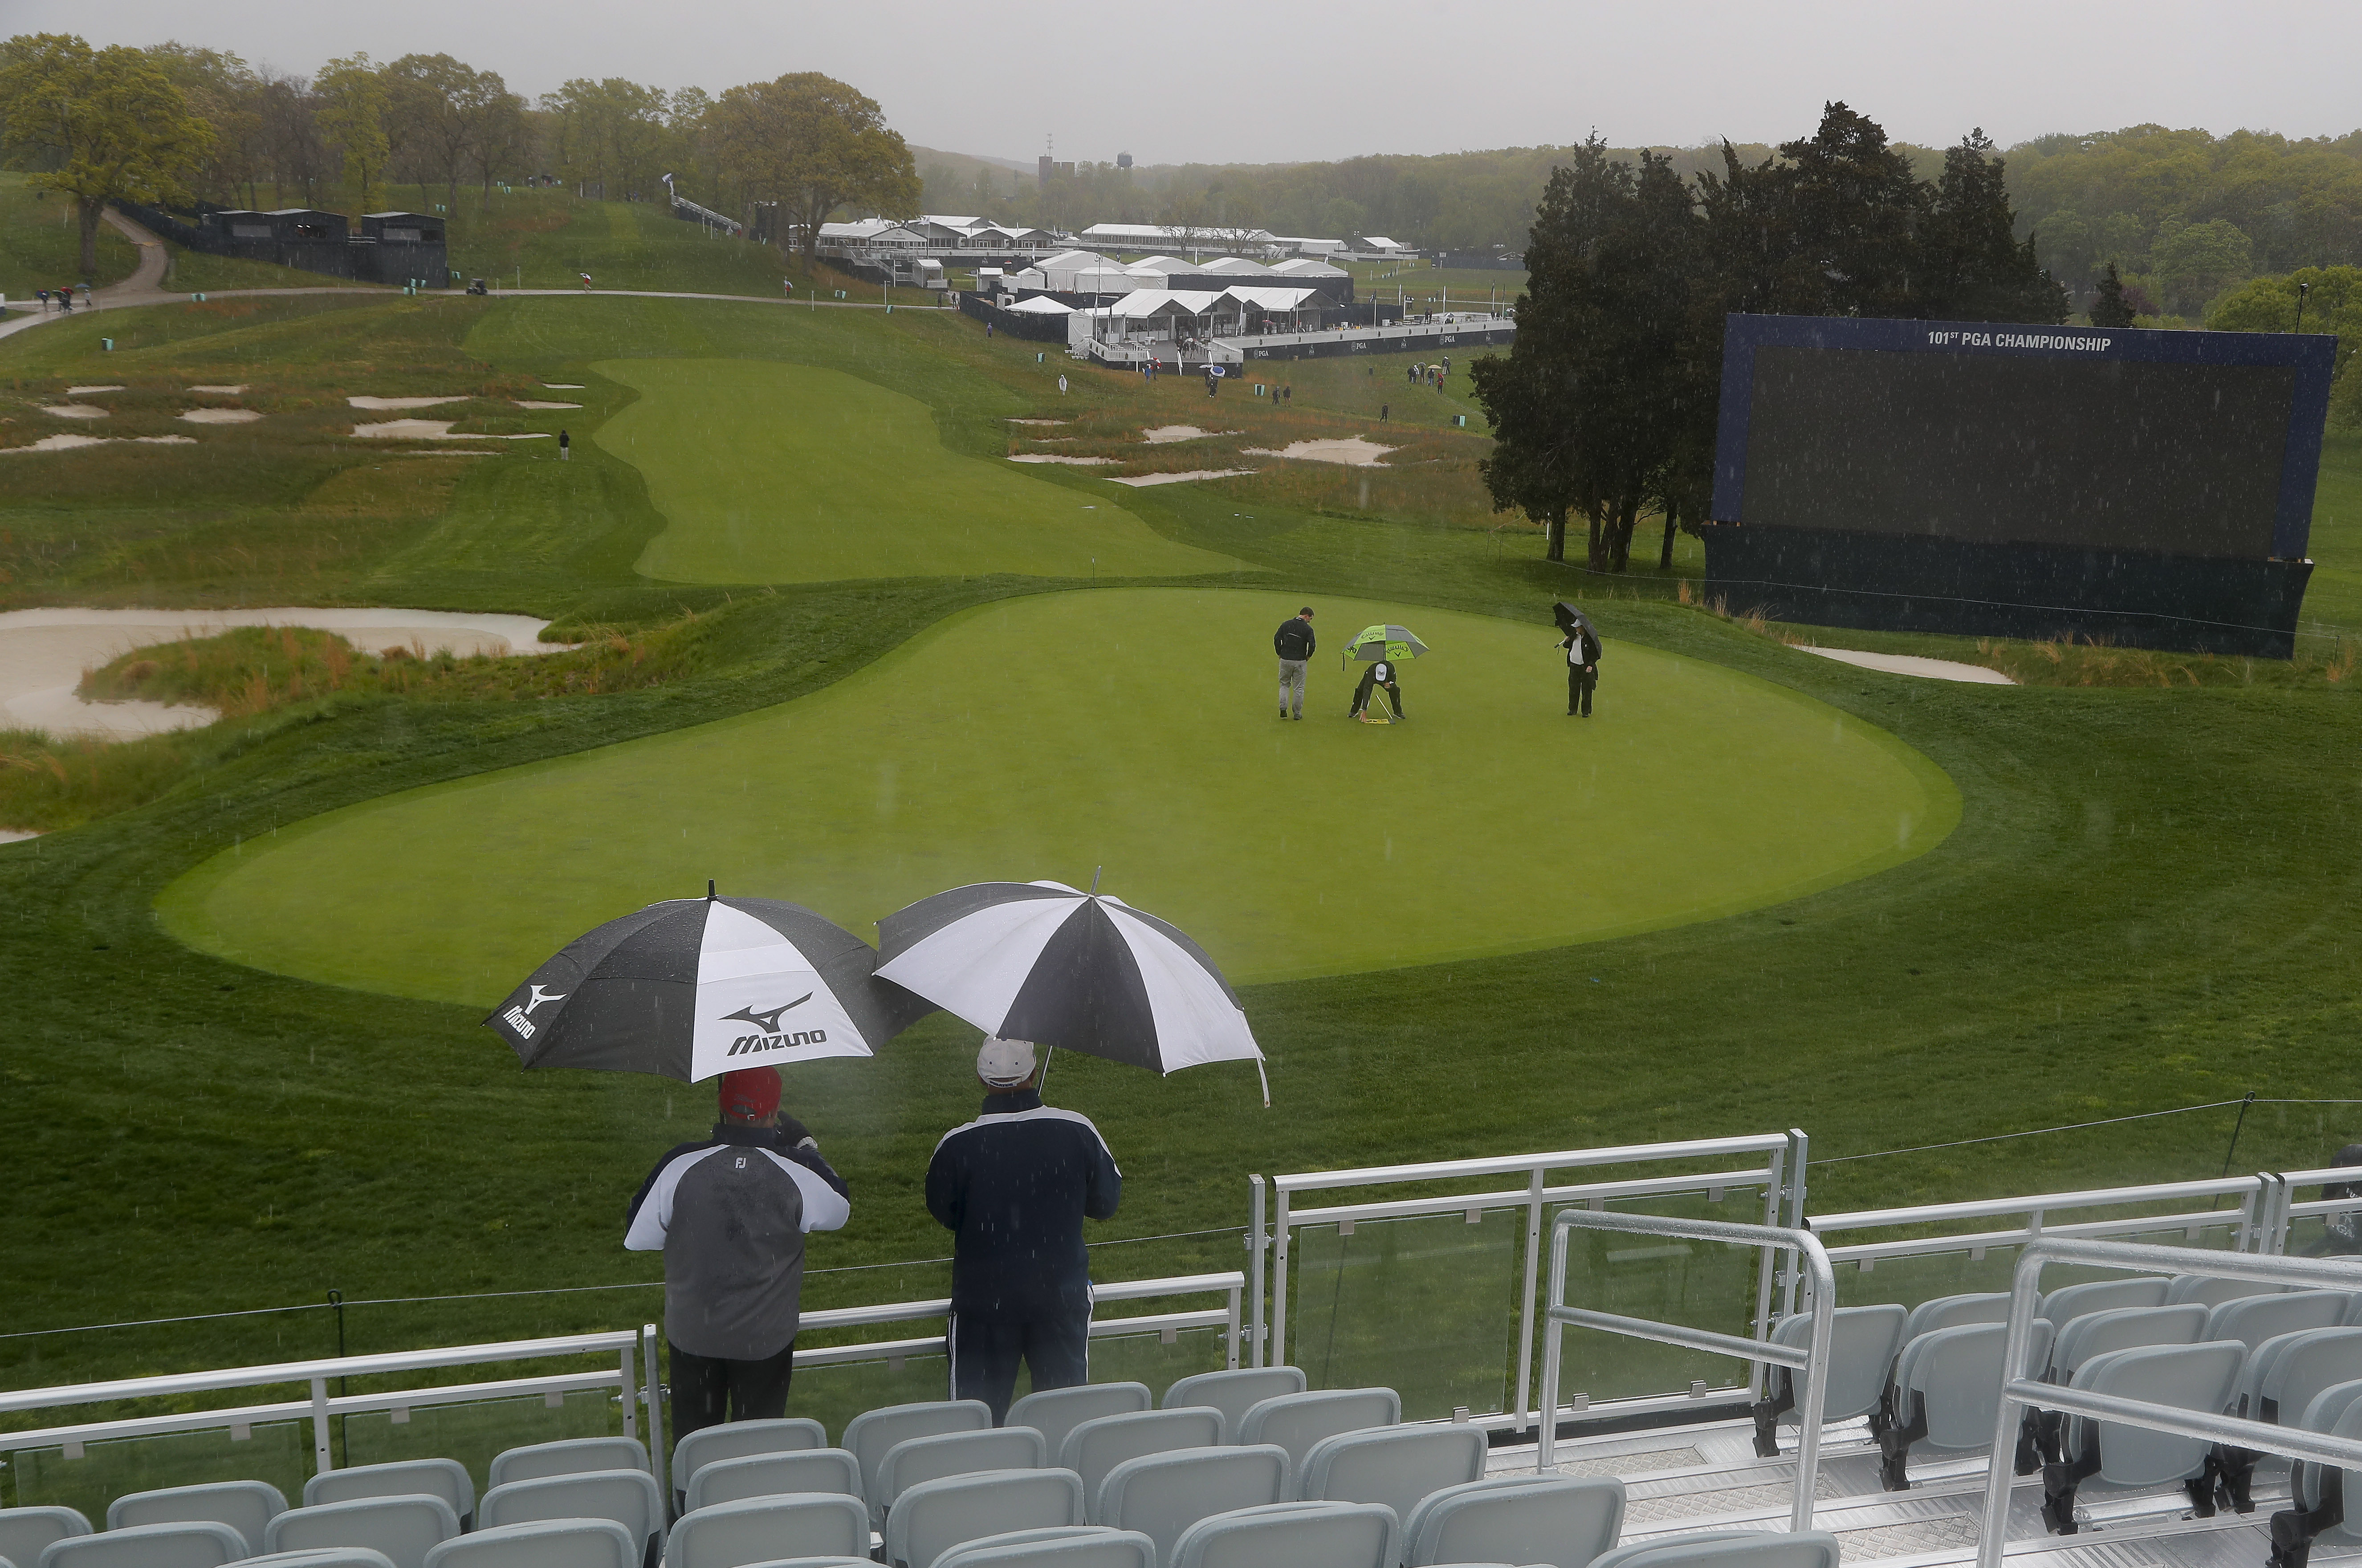 Pga Championship 2019 Weather Forecast Will Rain Delay 1st And 2nd Rounds At Bethpage Black Nj Com